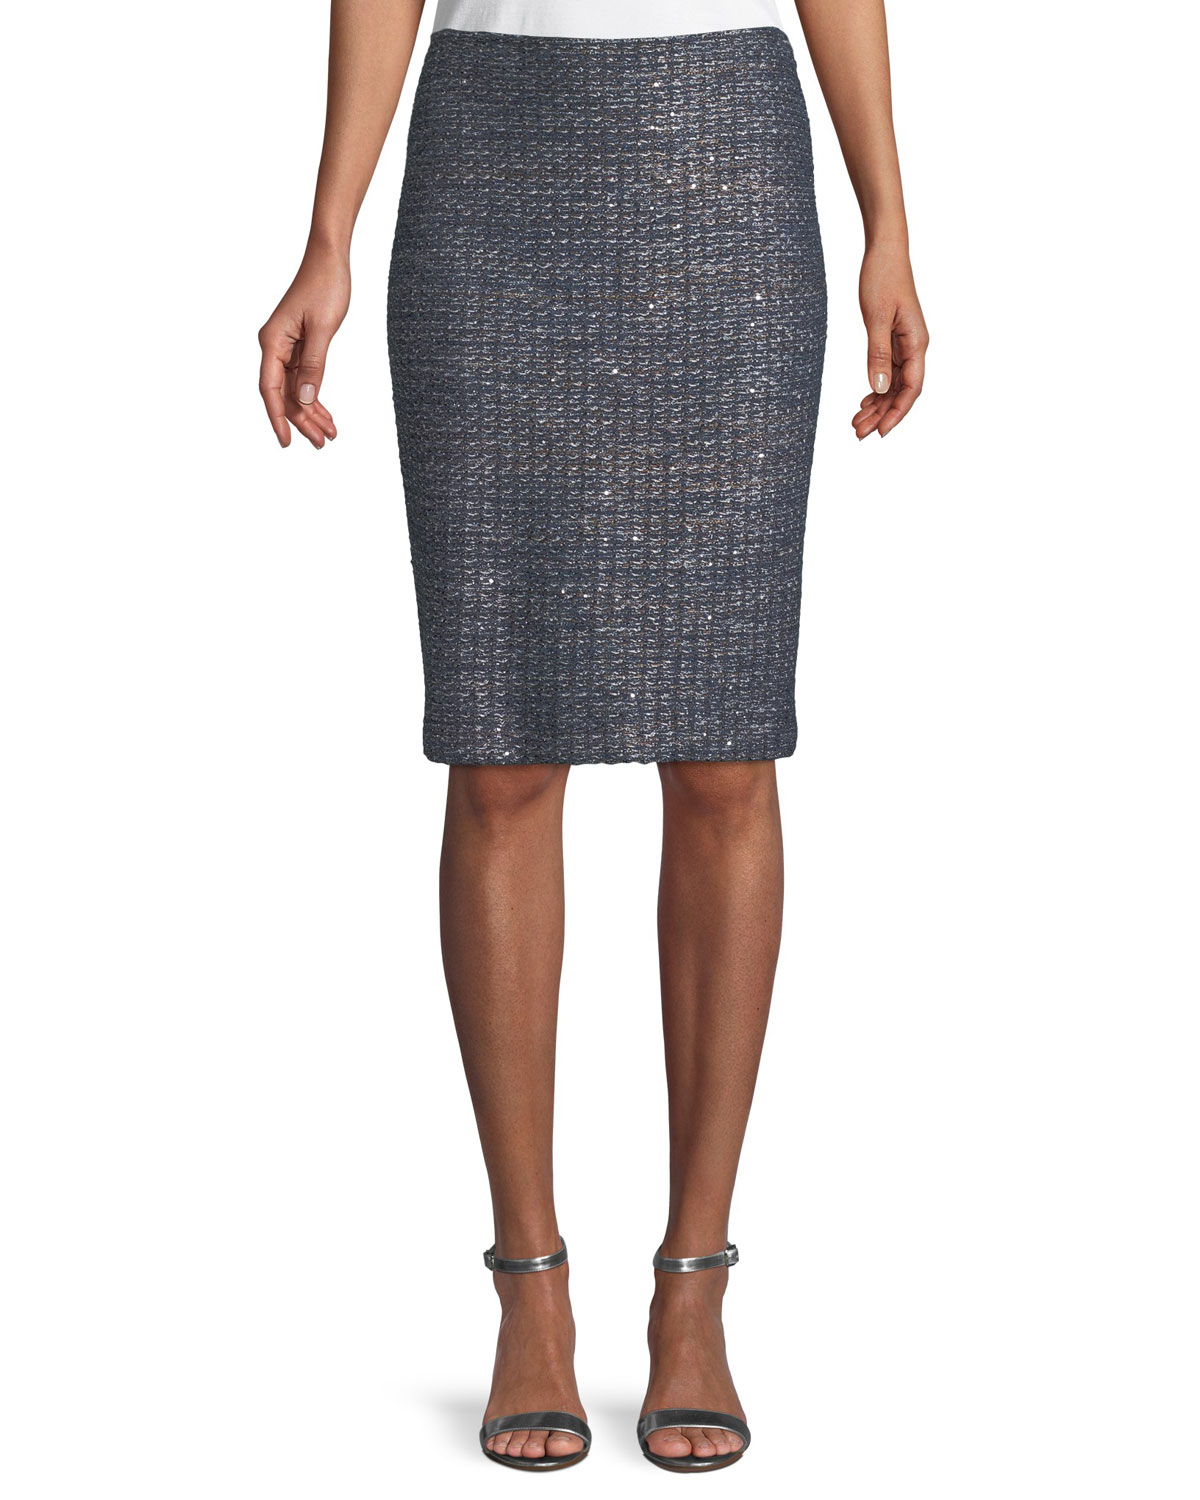 Copper Sequin Tweed Knit Skirt